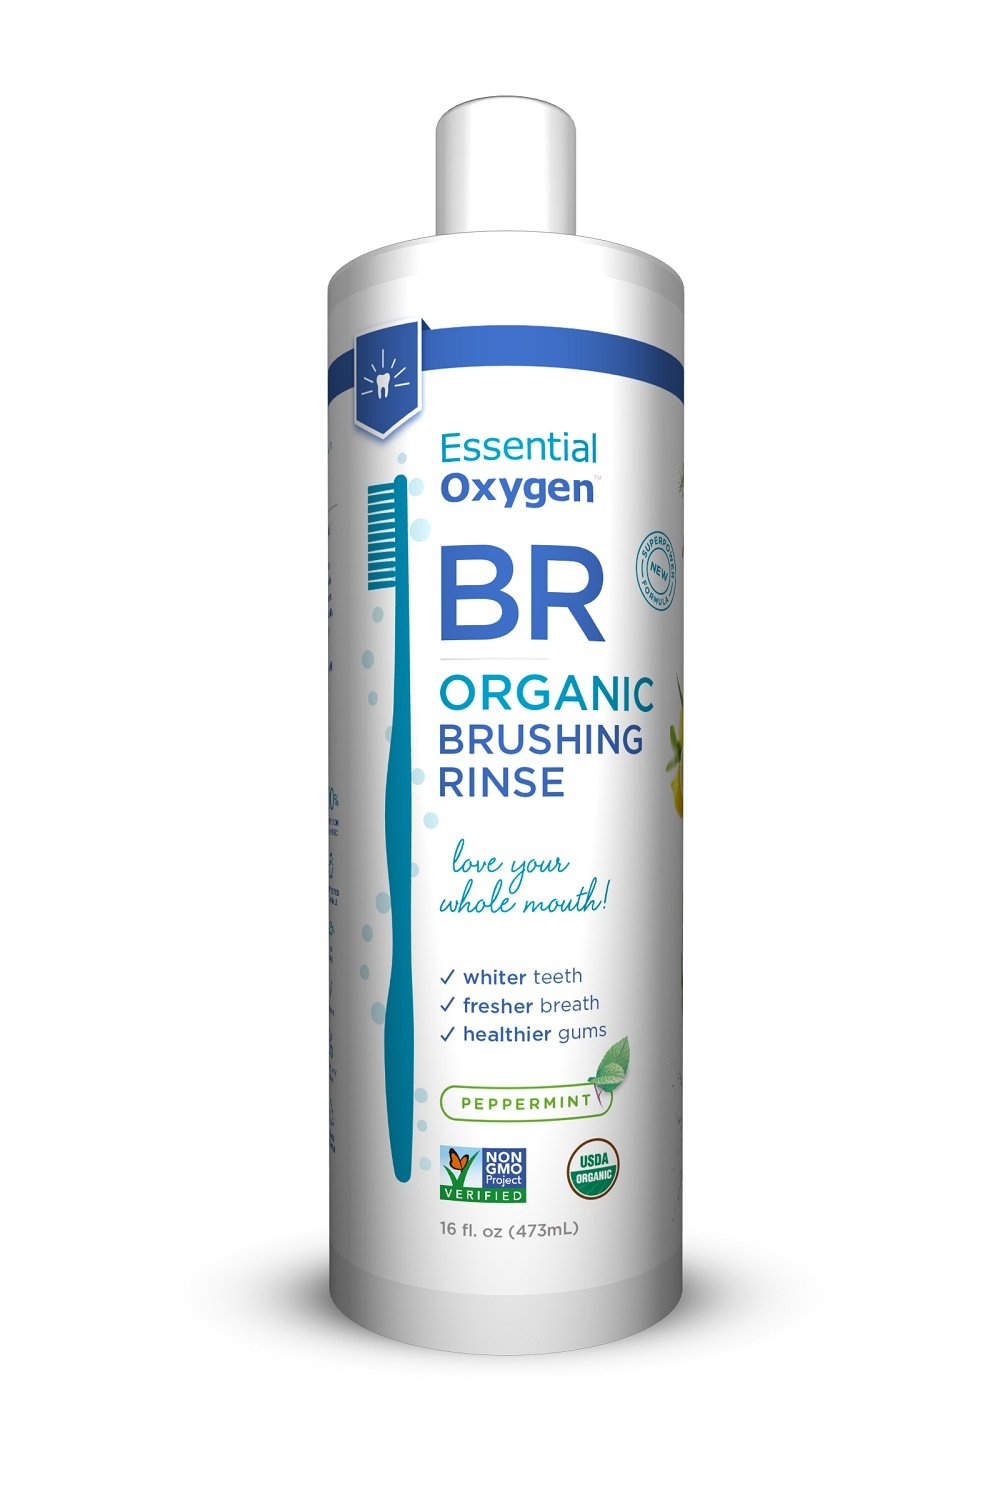 Essential Oxygen Organic Brushing Rinse Toothpaste